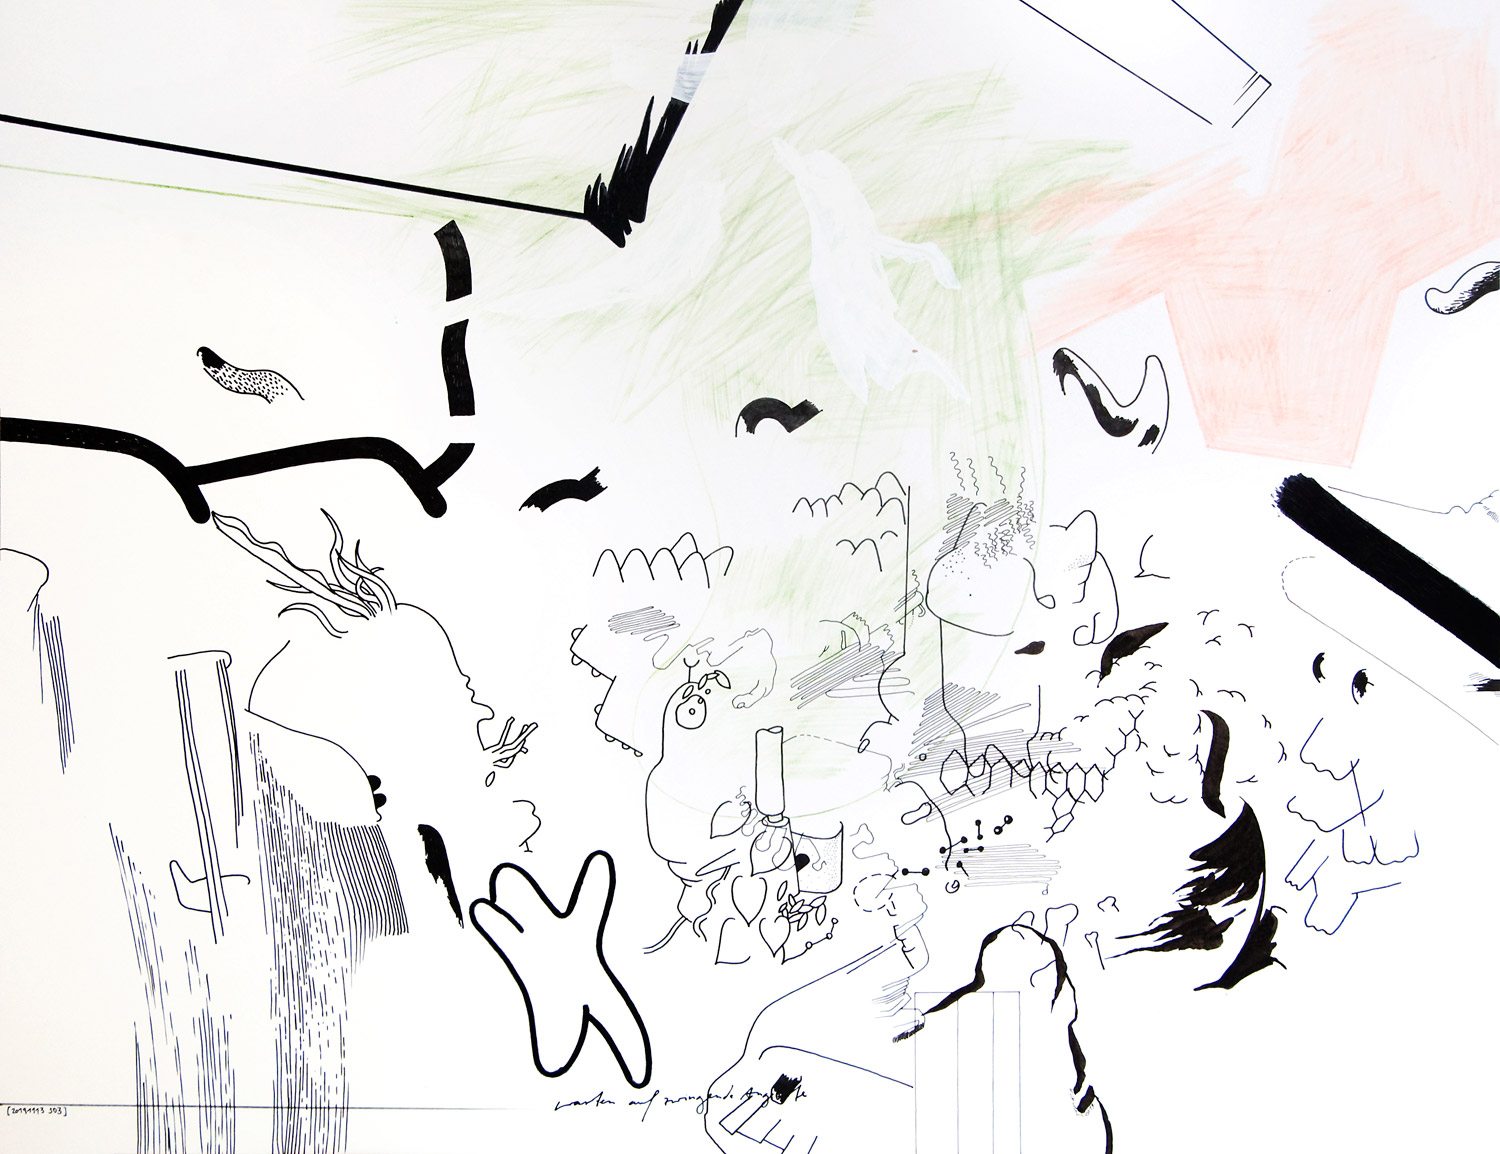 """Wolfgang Kschwendt: Drawing - """"Warten Auf Zwingende Angebote (Waiting For Compelling Offers)"""""""